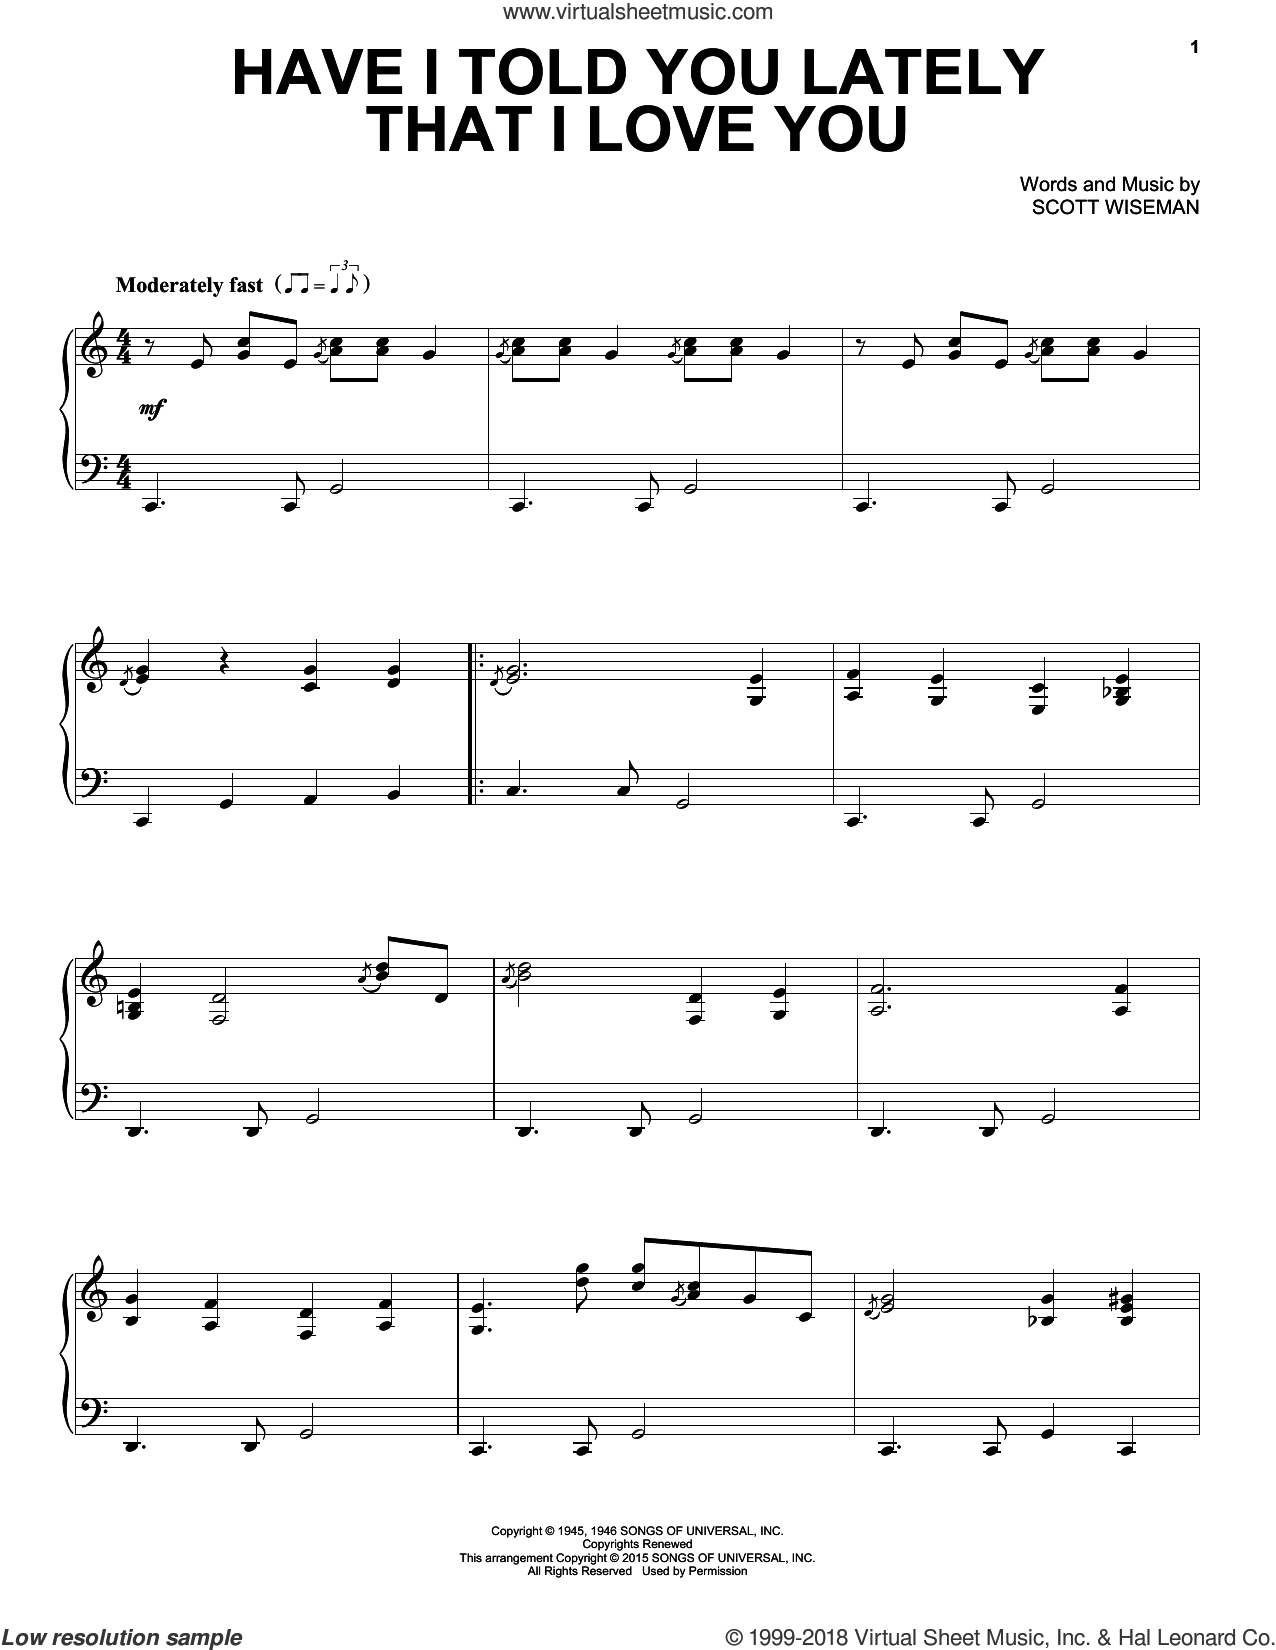 Have I Told You Lately That I Love You sheet music for piano solo by Scott Wiseman, Gene Autrey, Kitty Wells & Red Foley and Ricky Nelson, intermediate skill level